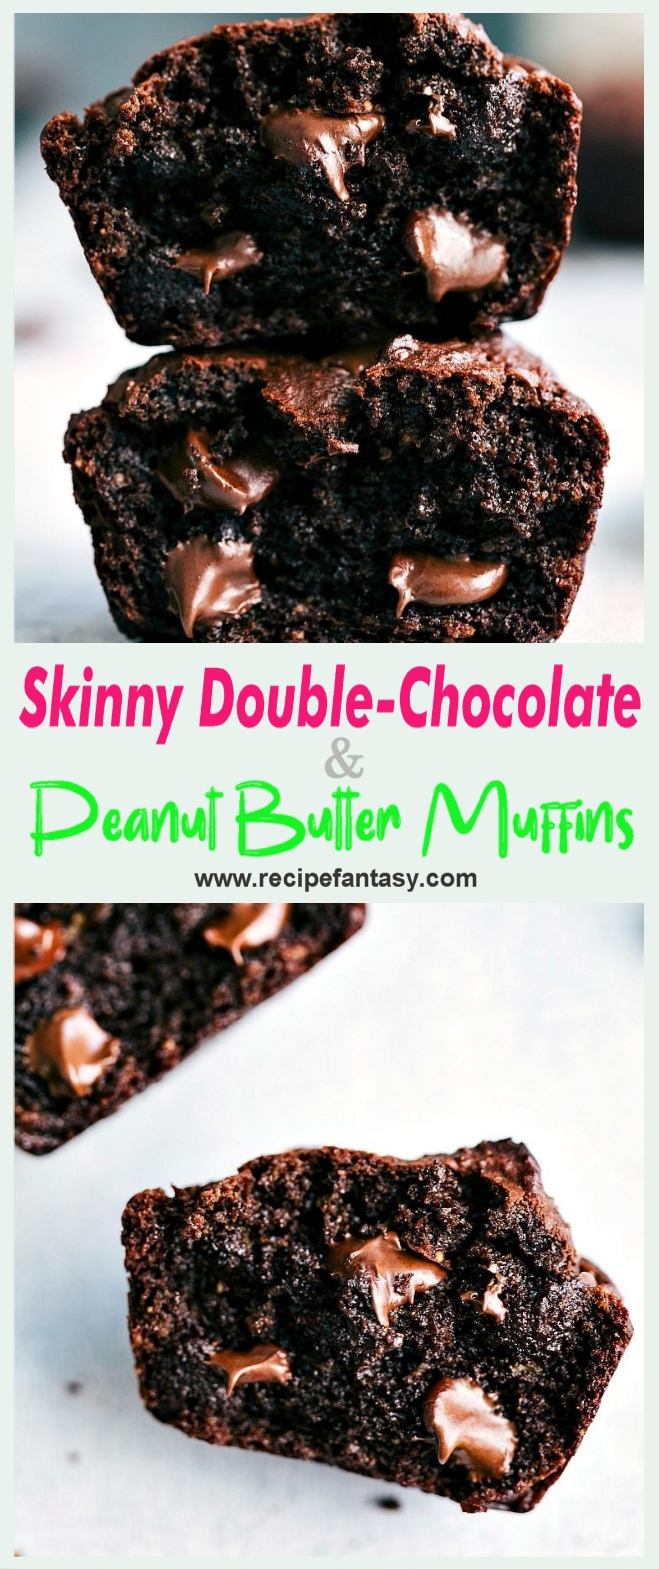 Skinny Double-Chocolate & Peanut Butter Muffins